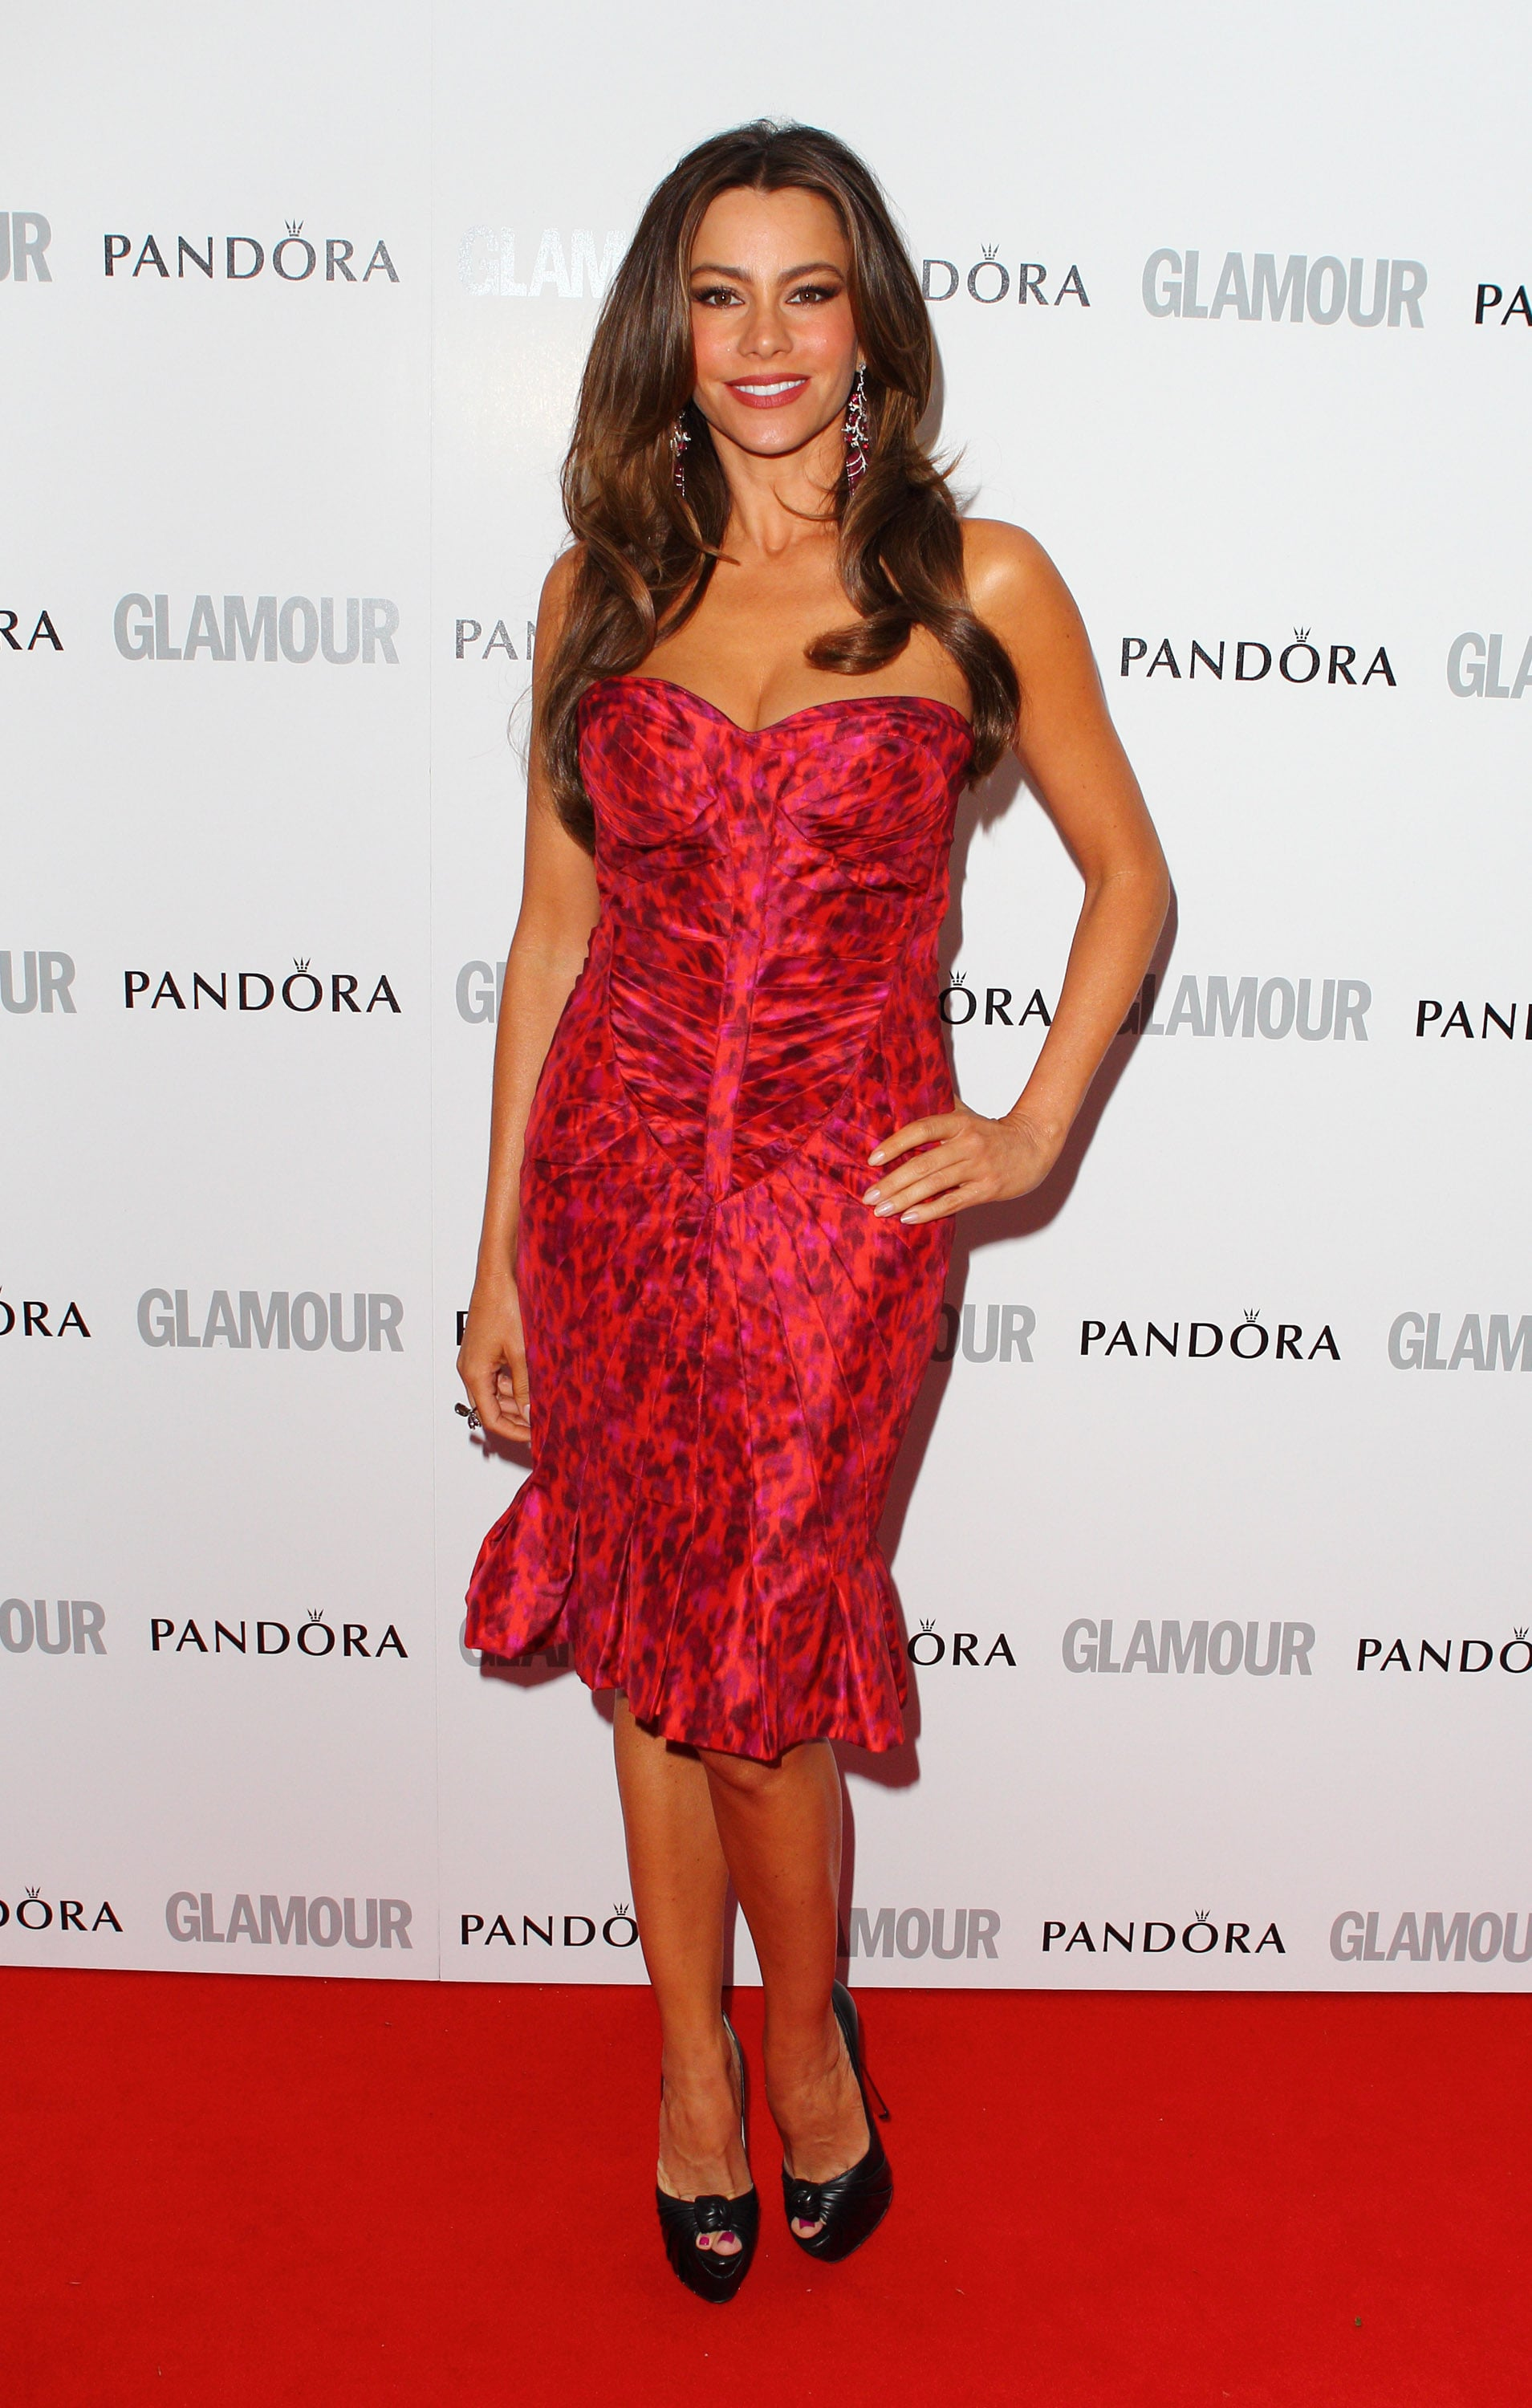 Vergara fired up the red carpet in a strapless Zac Posen fit-and-flare for the Glamour Women of the Year Awards in May 2012.